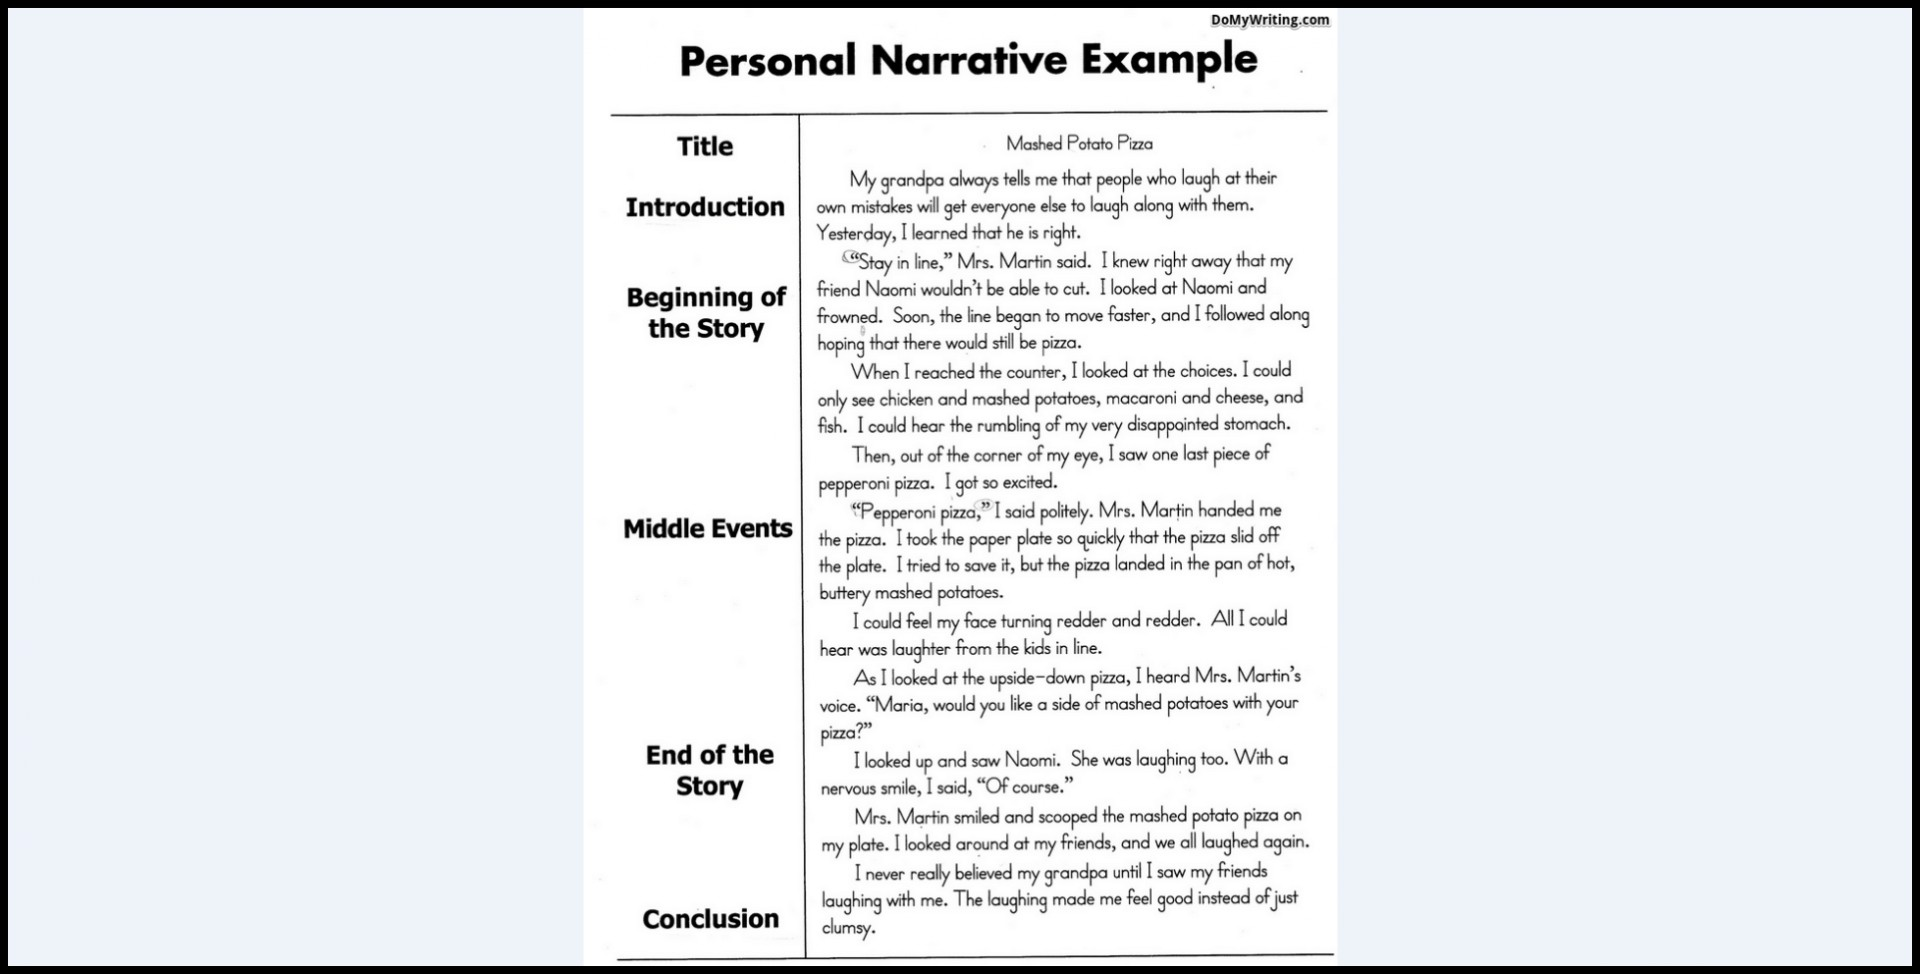 002 Narrative Essay Example What Is Breathtaking A Sample 5th Grade In Third Person 1920